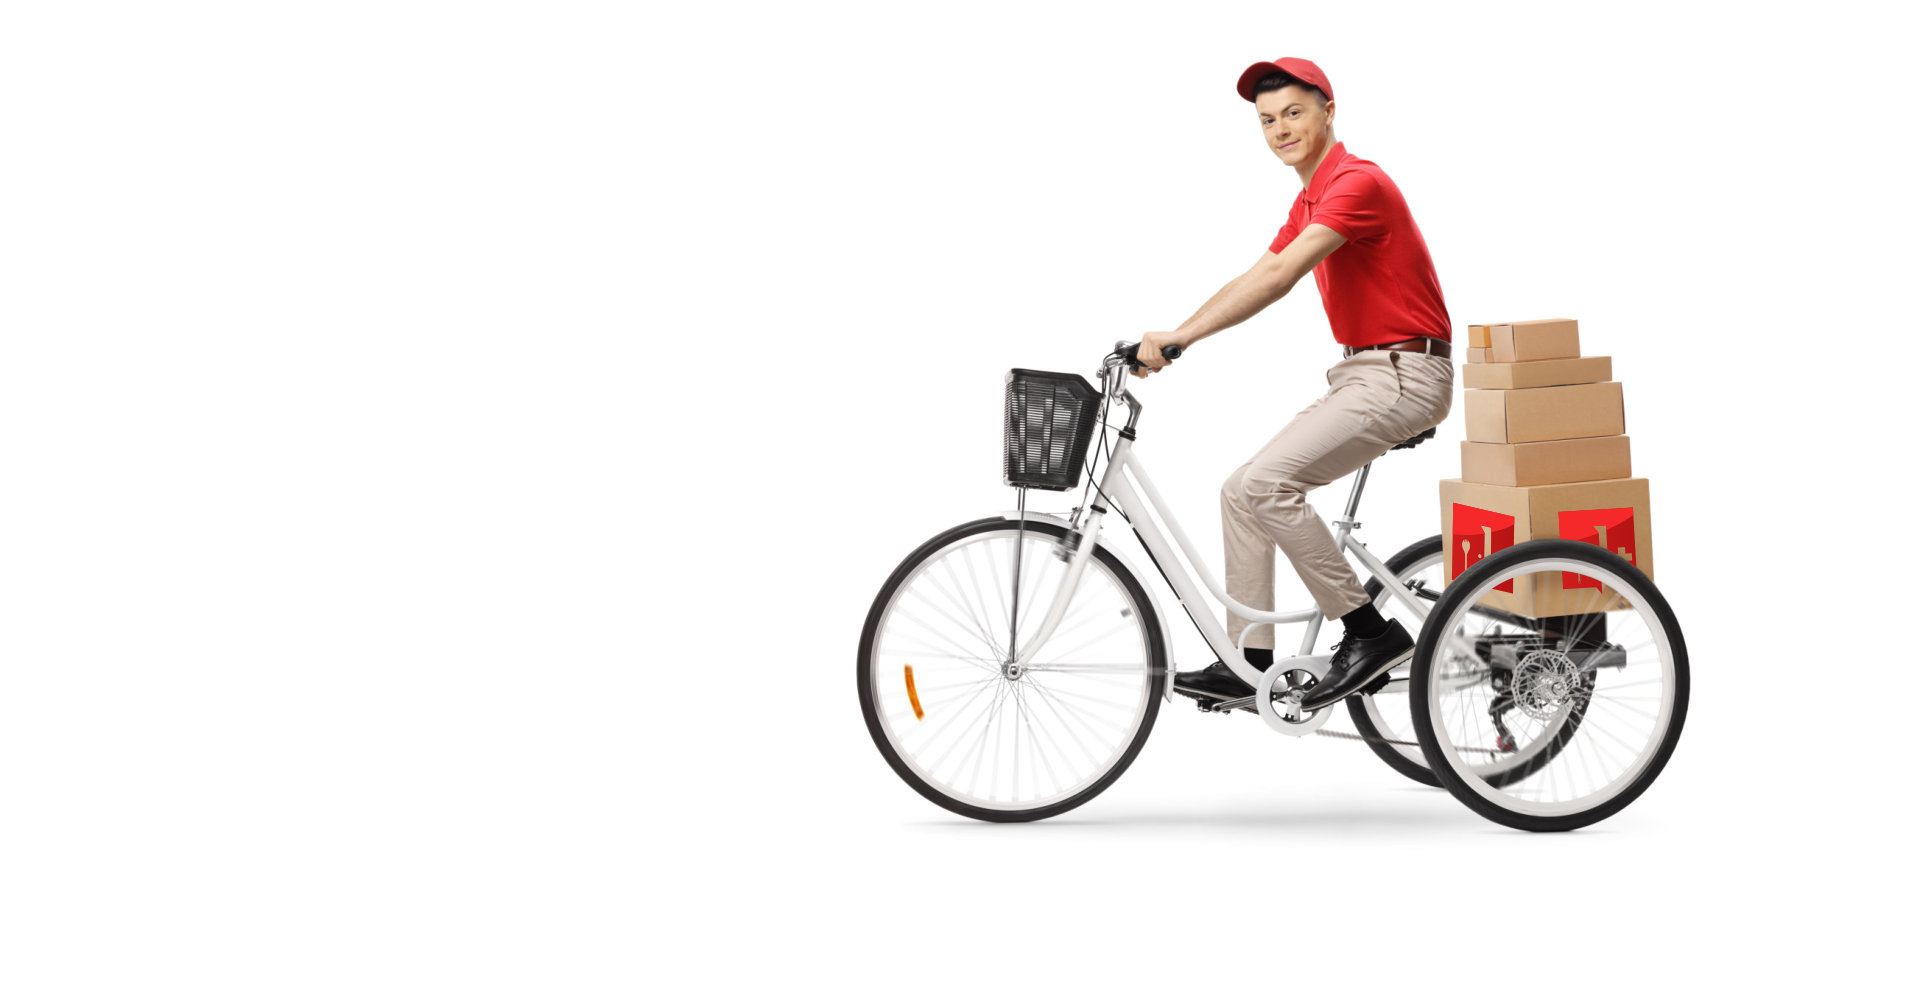 delivery man with packages riding his bicycle